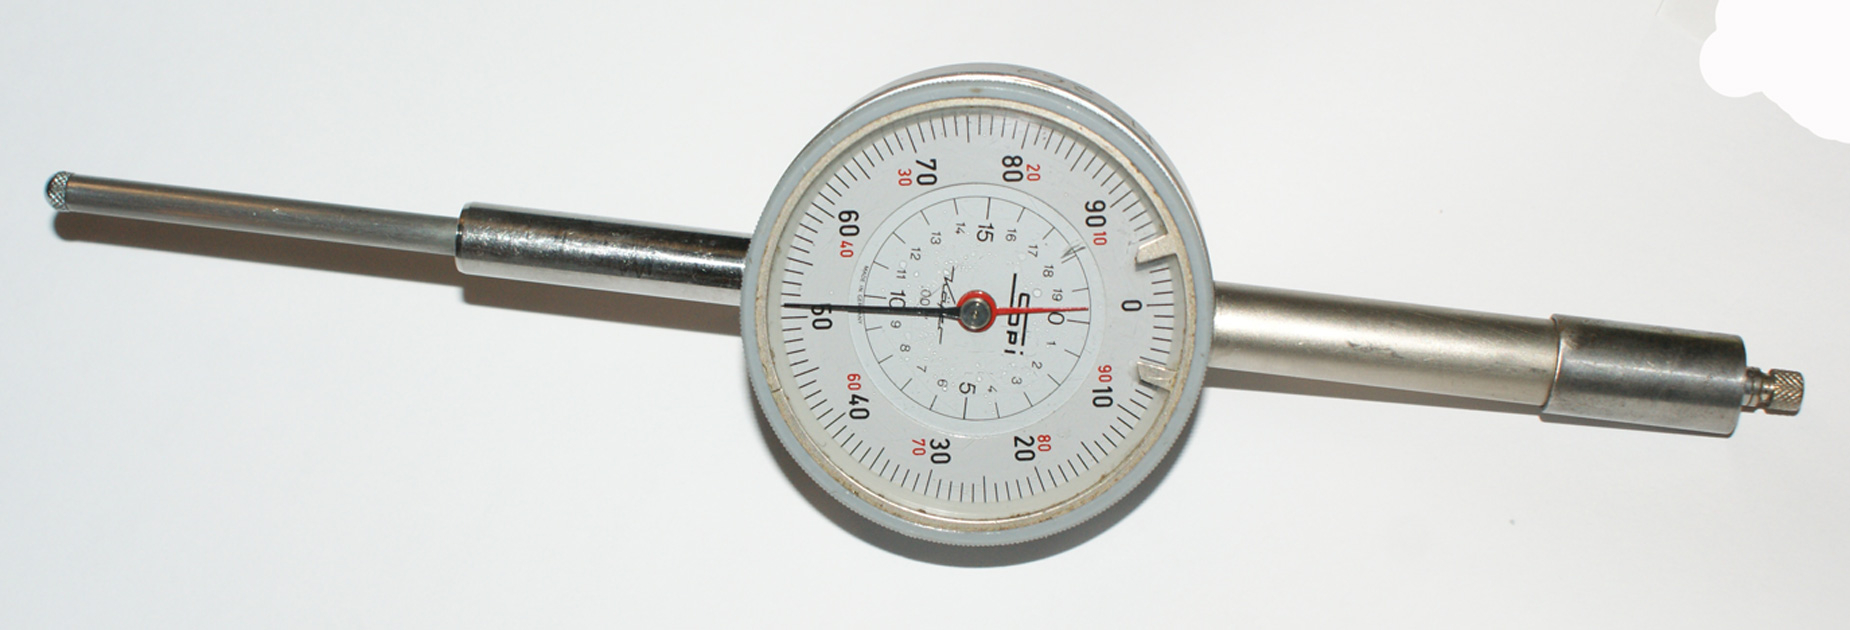 "SPI 2"" Dial Indicator - Large Face"